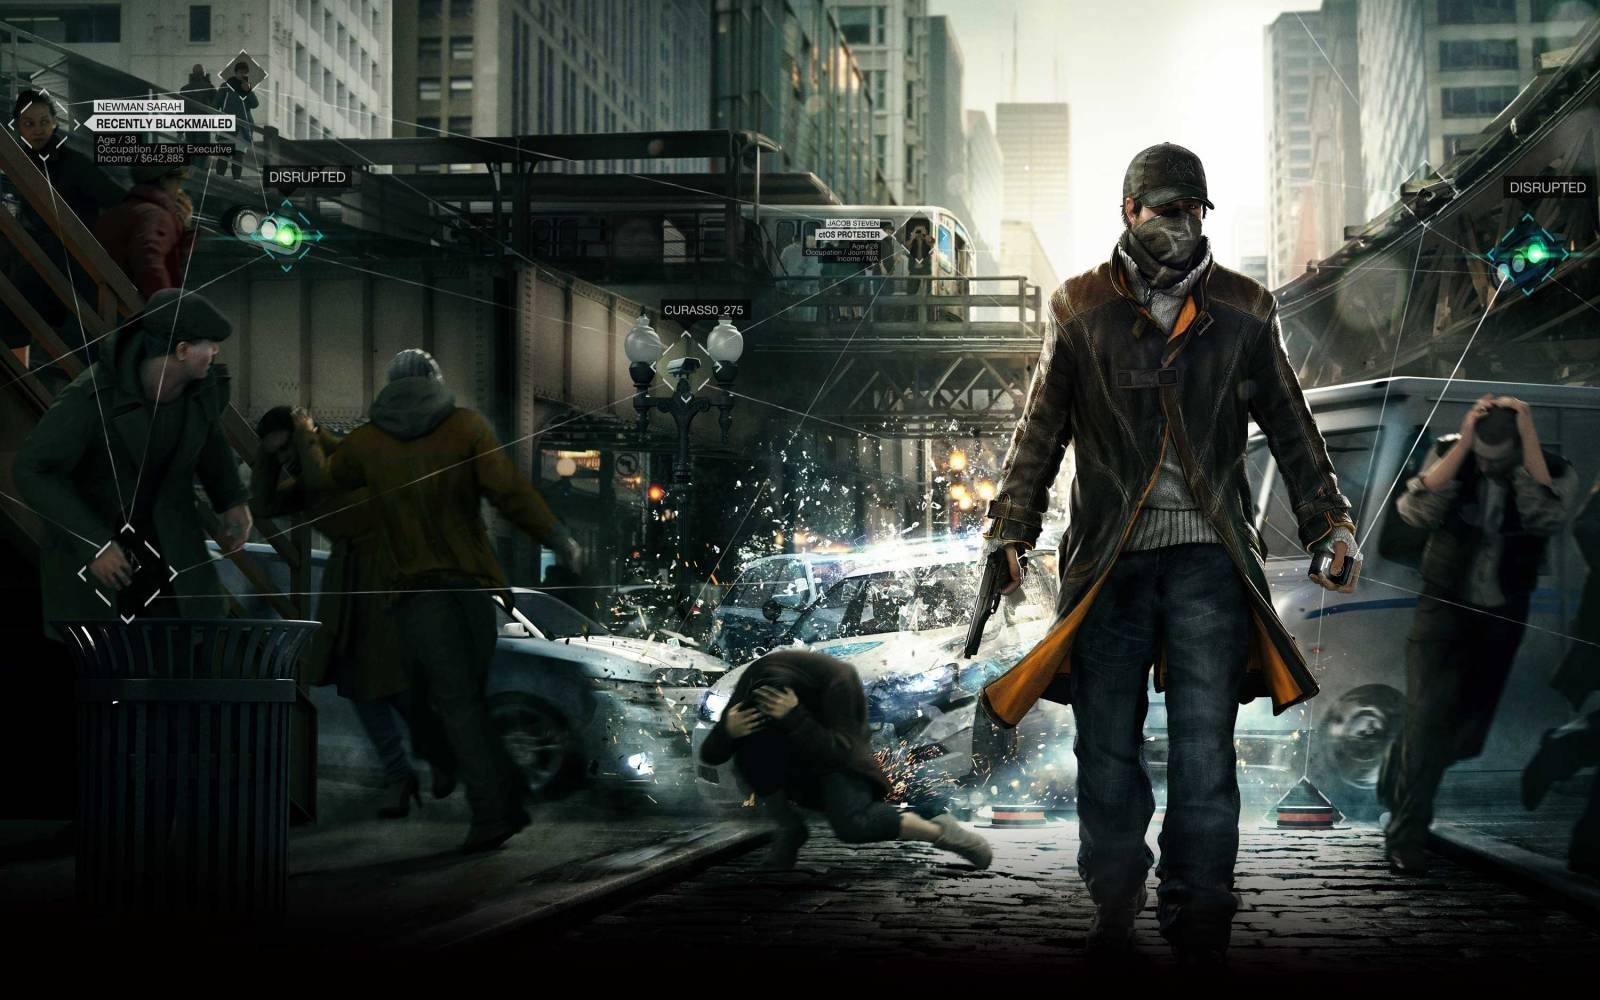 Games/Apps: Watch Dogs pre-order w/ $15 GC, Star Wars Mac/iOS games sale from $4, 50% off Modern Combat 4, iOS freebies, more